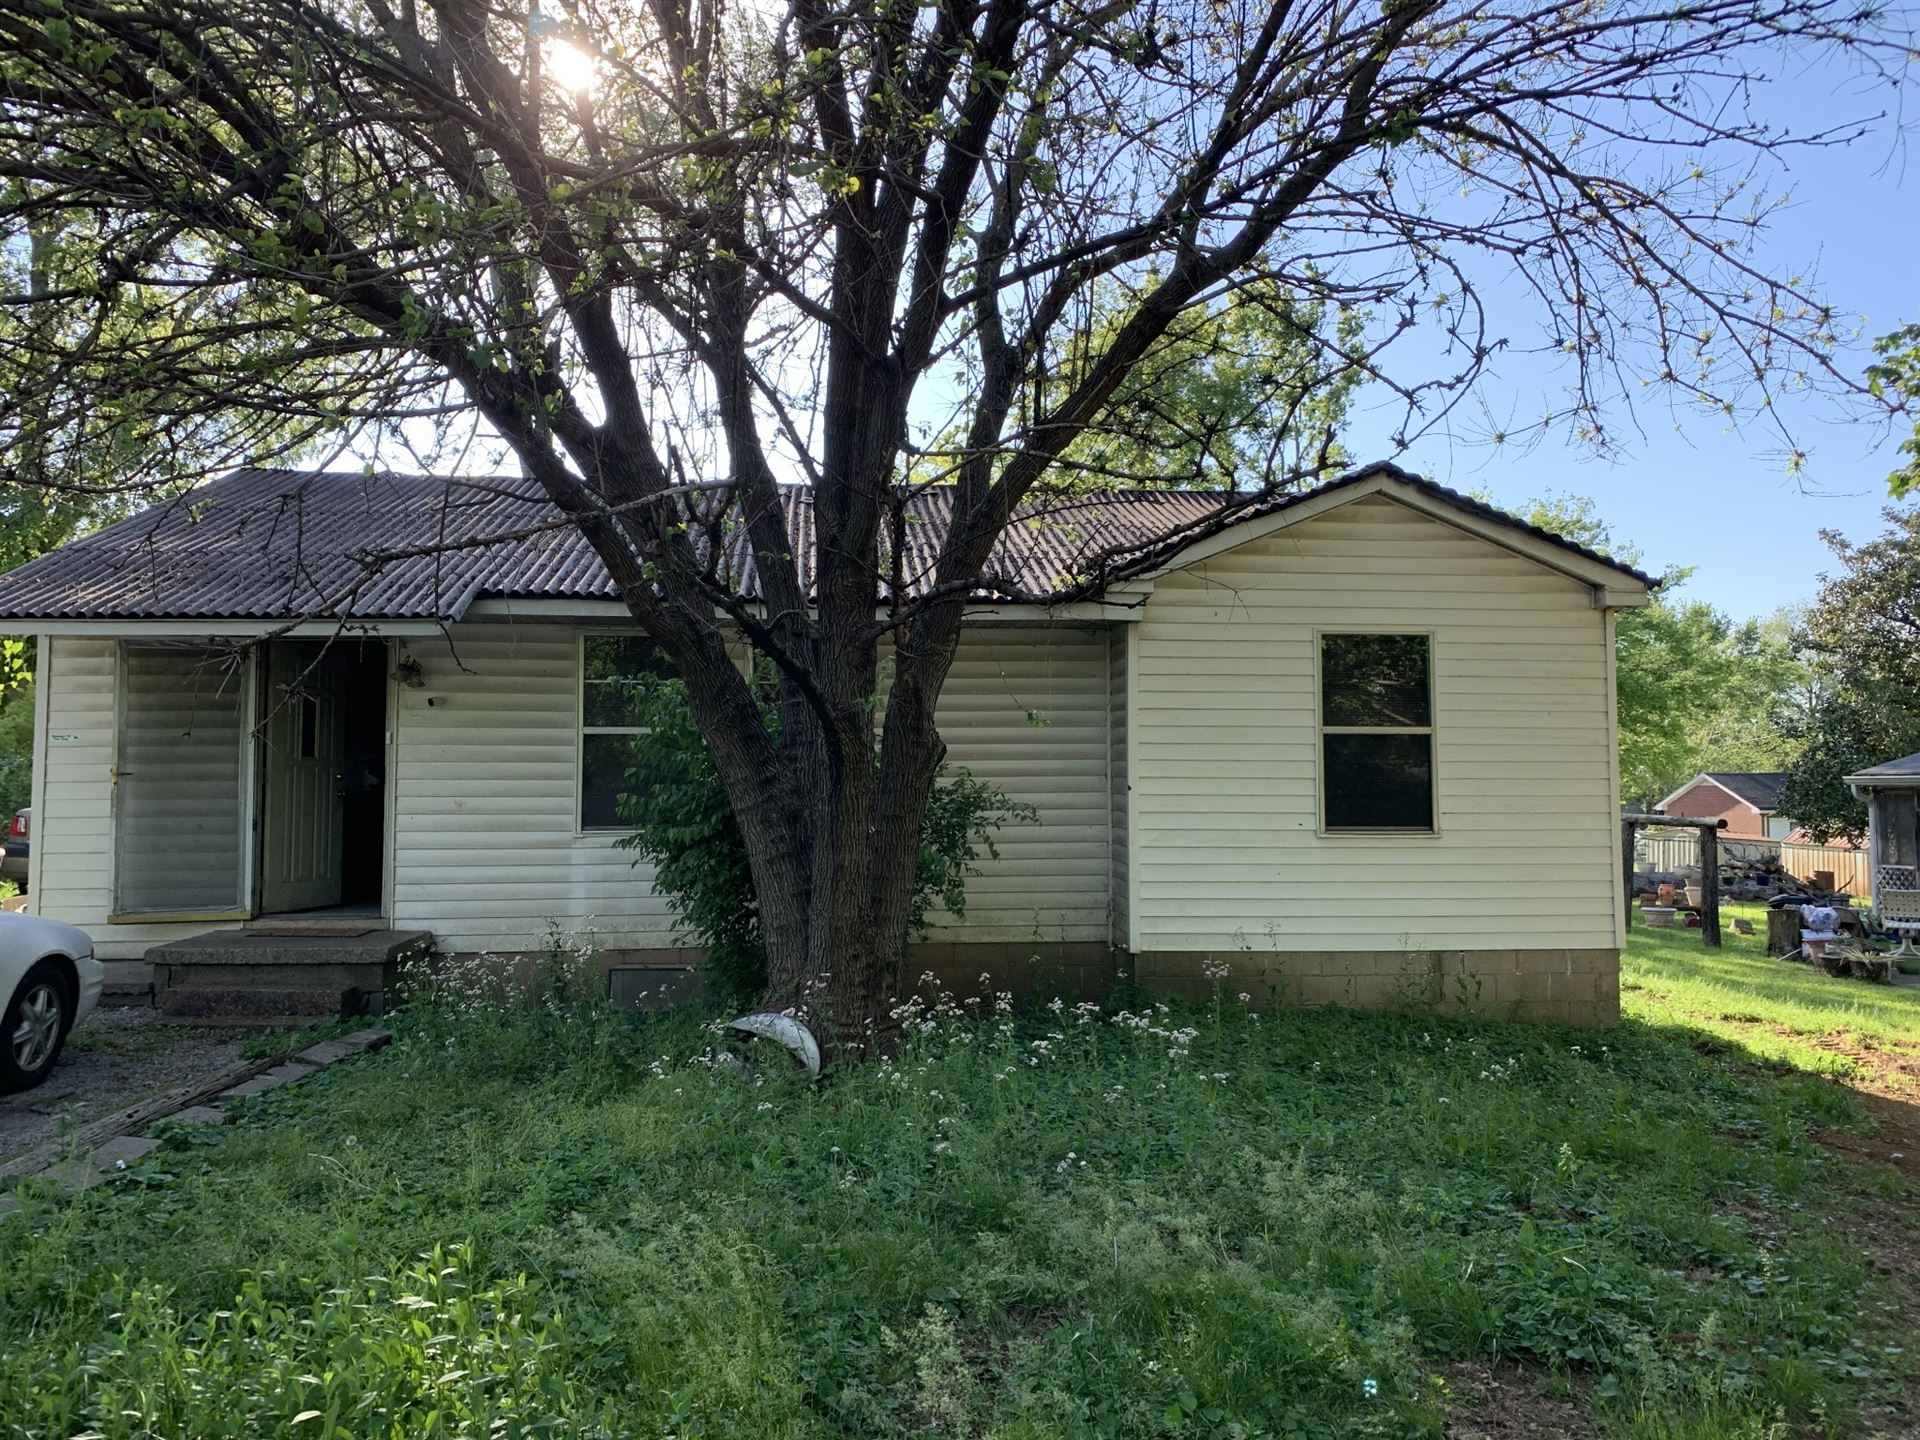 346 N Ford St, Gallatin, TN 37066 - MLS#: 2249542